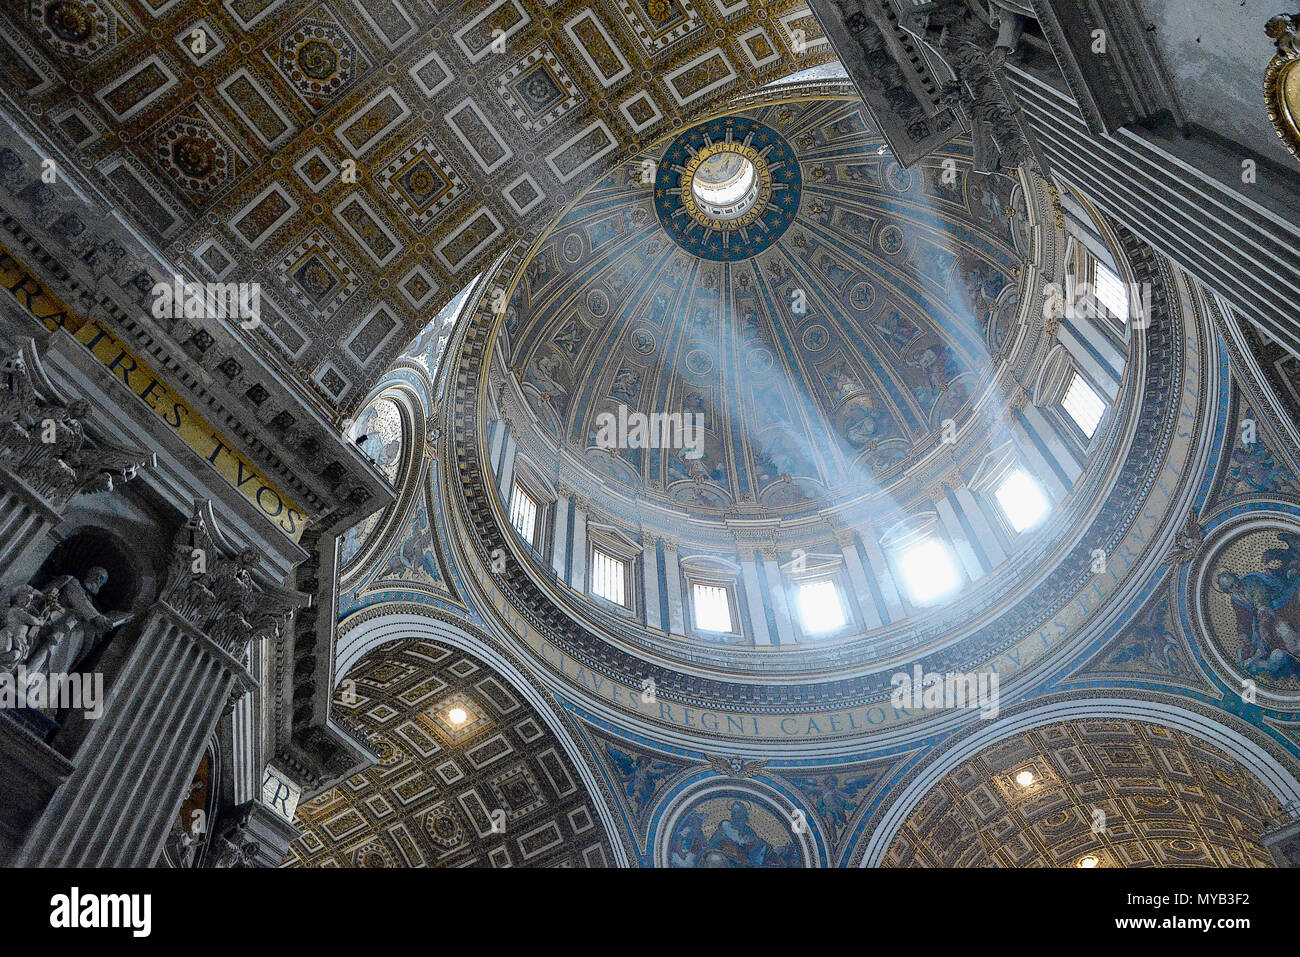 Saint Peter's Basilica, interior of dome with light (Crepuscular or God rays) (rendered in PS), Vatican City, Rome, Italy Stock Photo